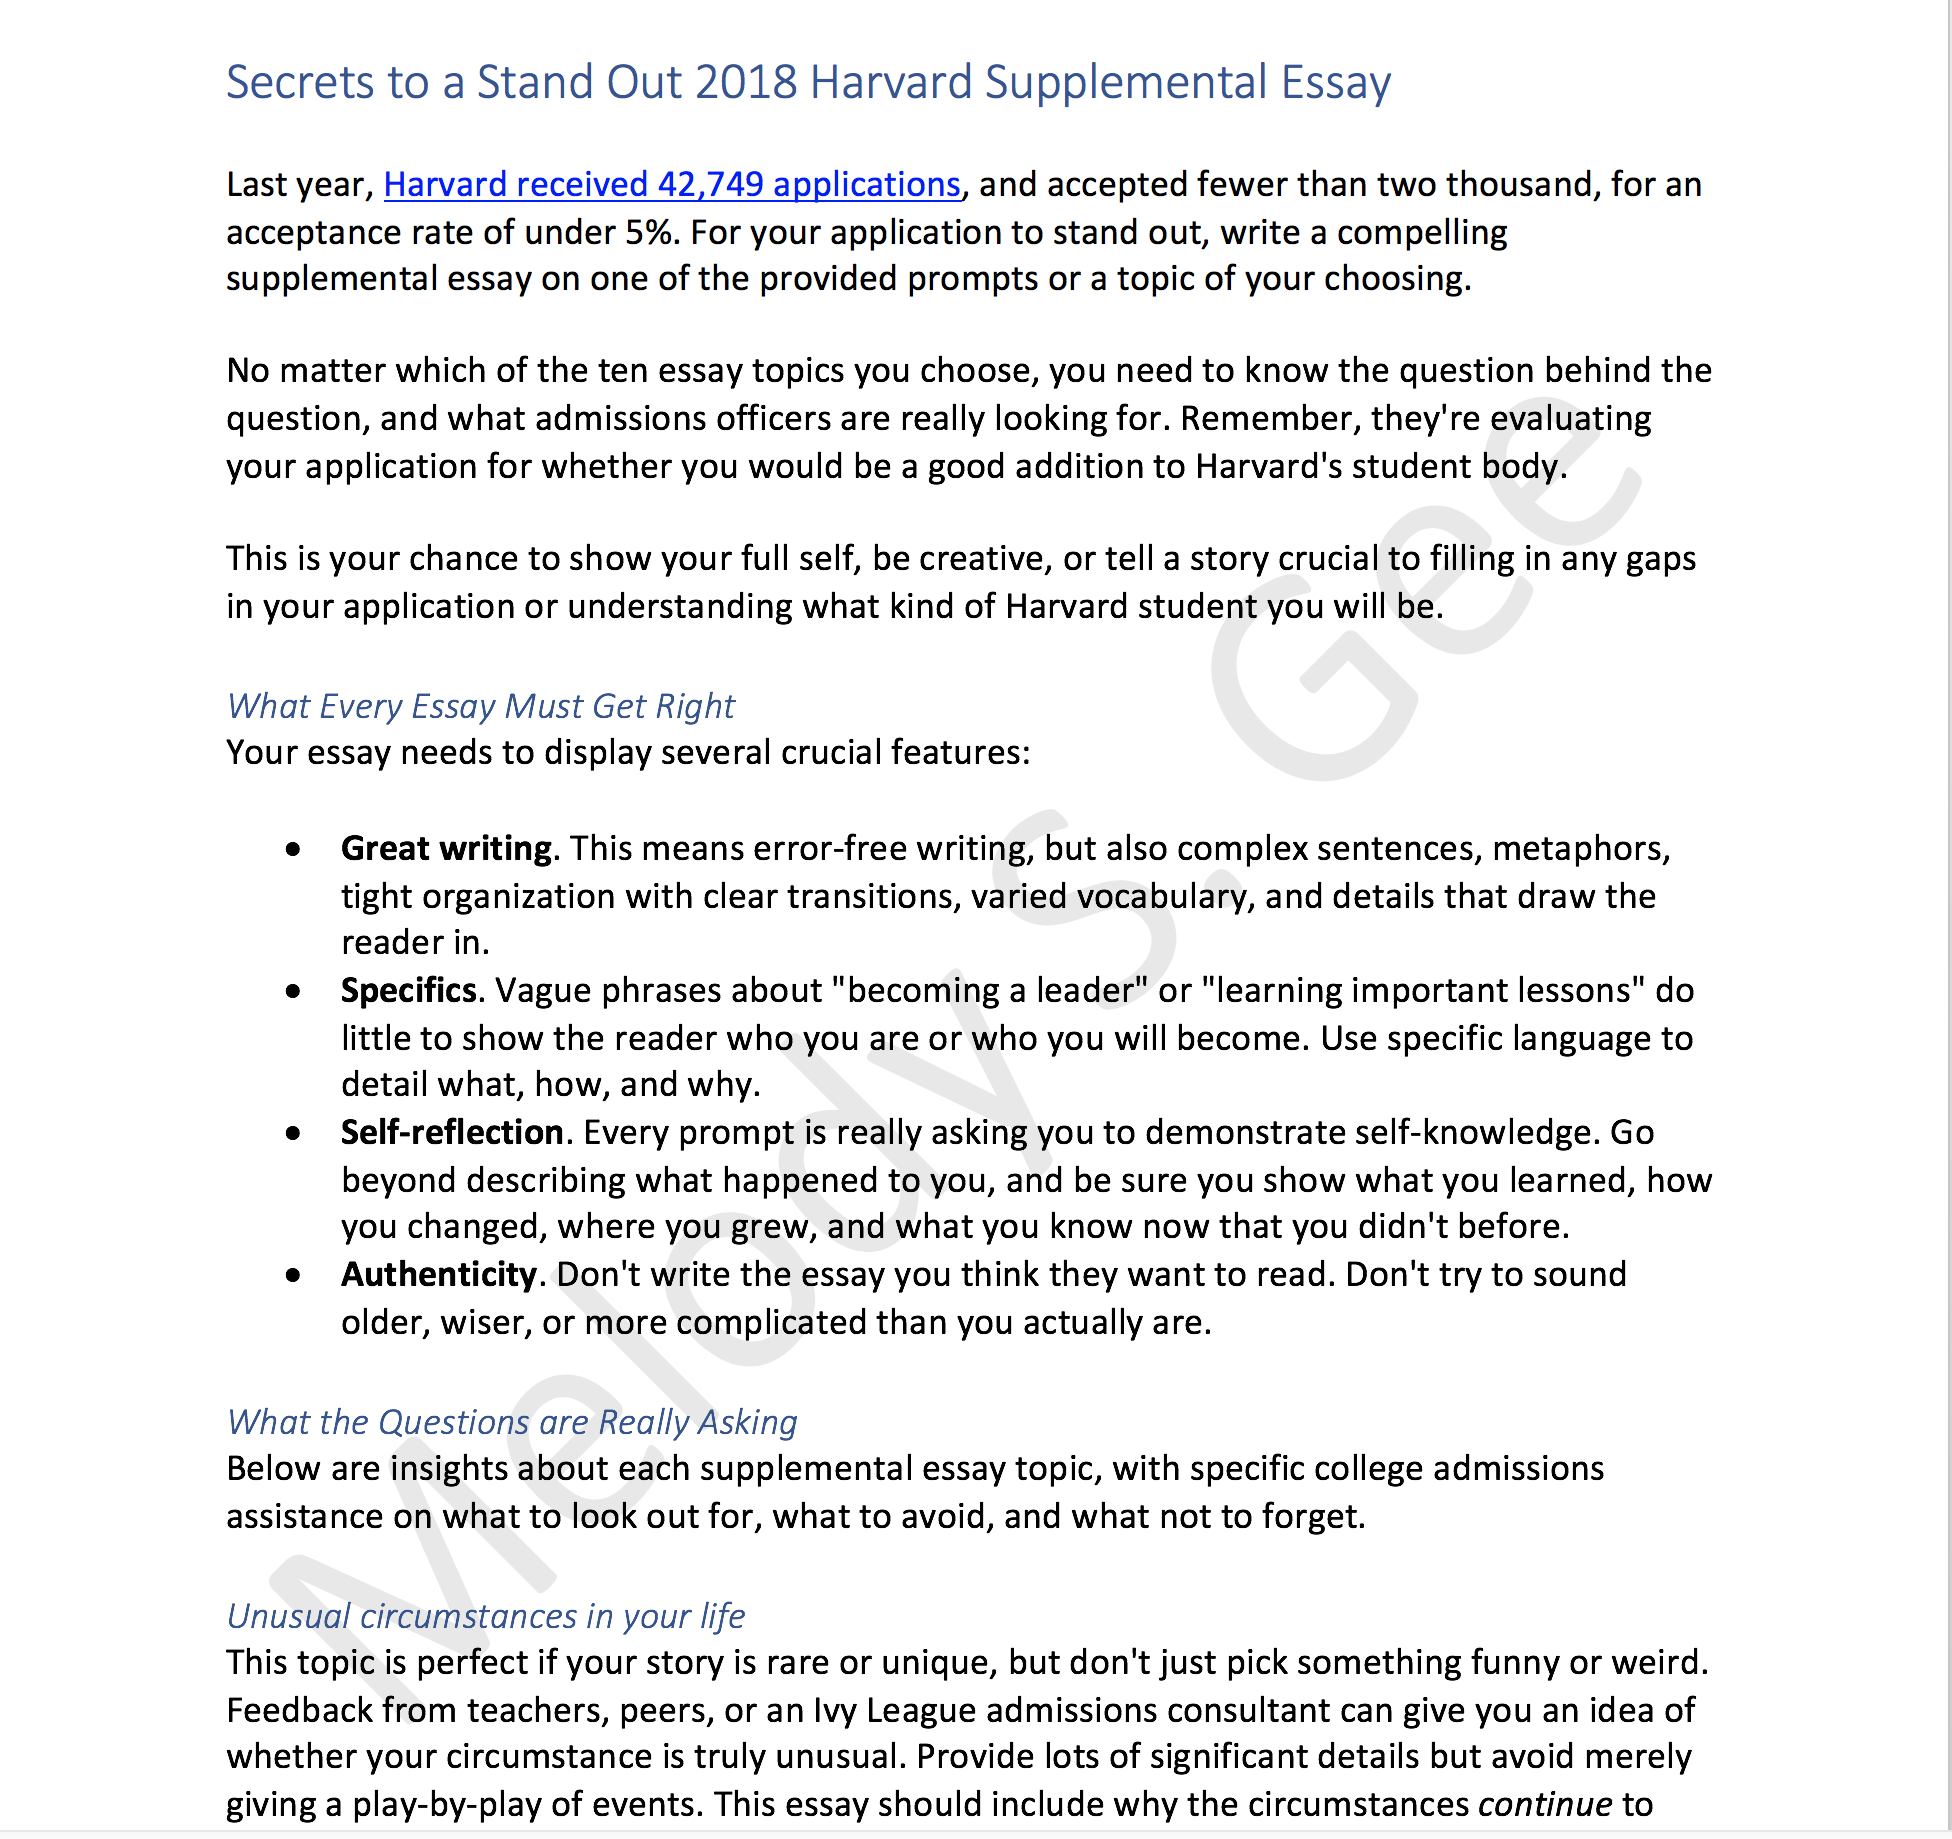 002 Harvard Supplemental Essay Sample Supplement Remarkable 2018 2018-19 Full